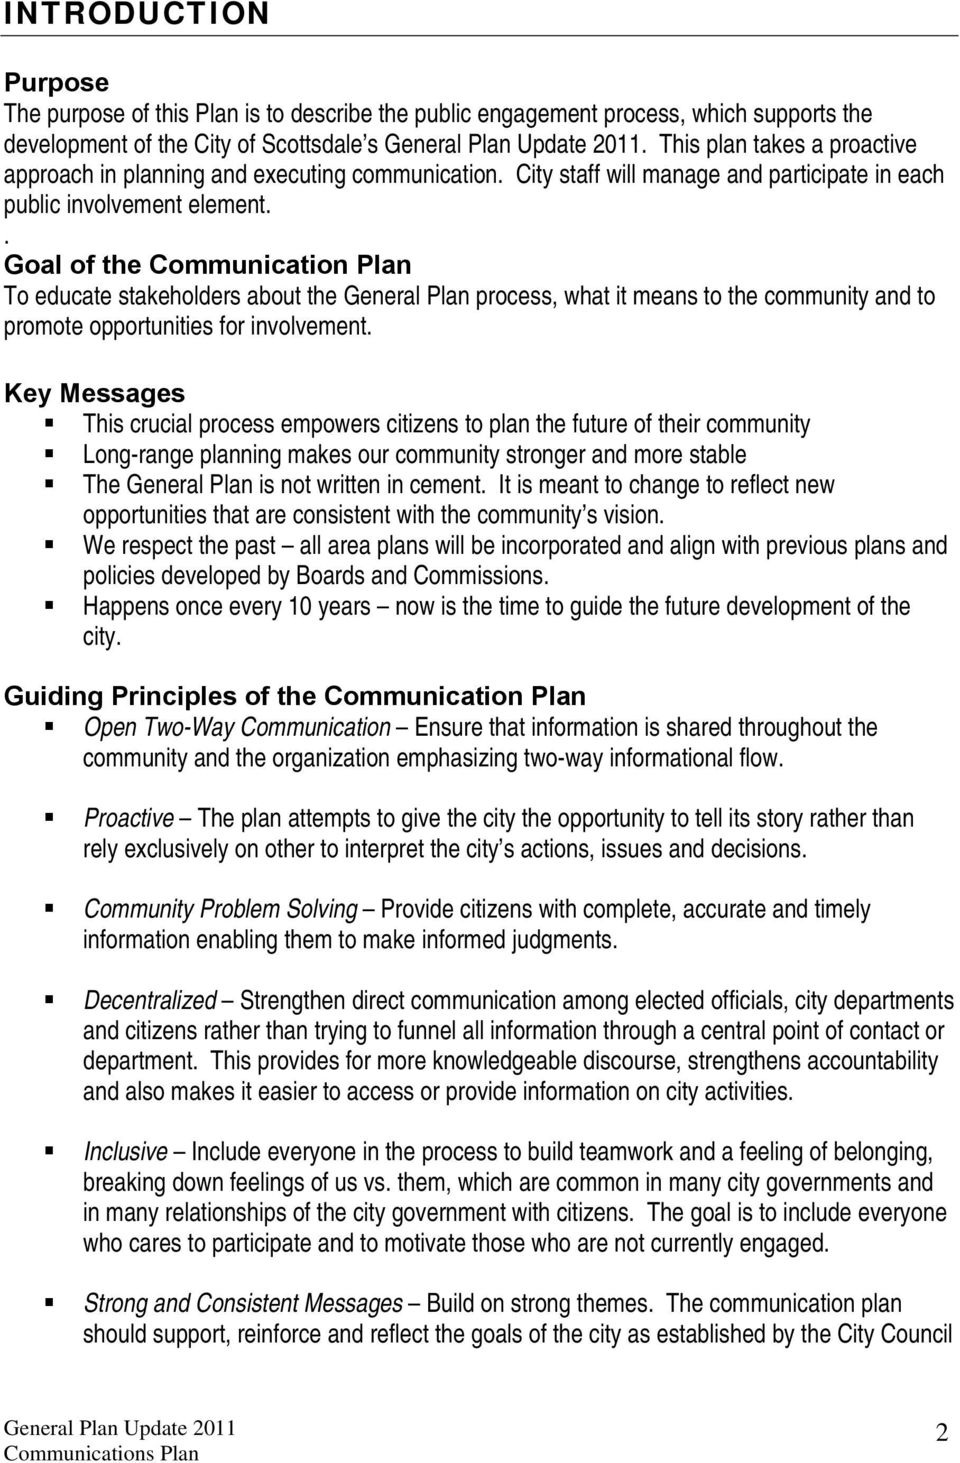 . Goal of the Communication Plan To educate stakeholders about the General Plan process, what it means to the community and to promote opportunities for involvement.